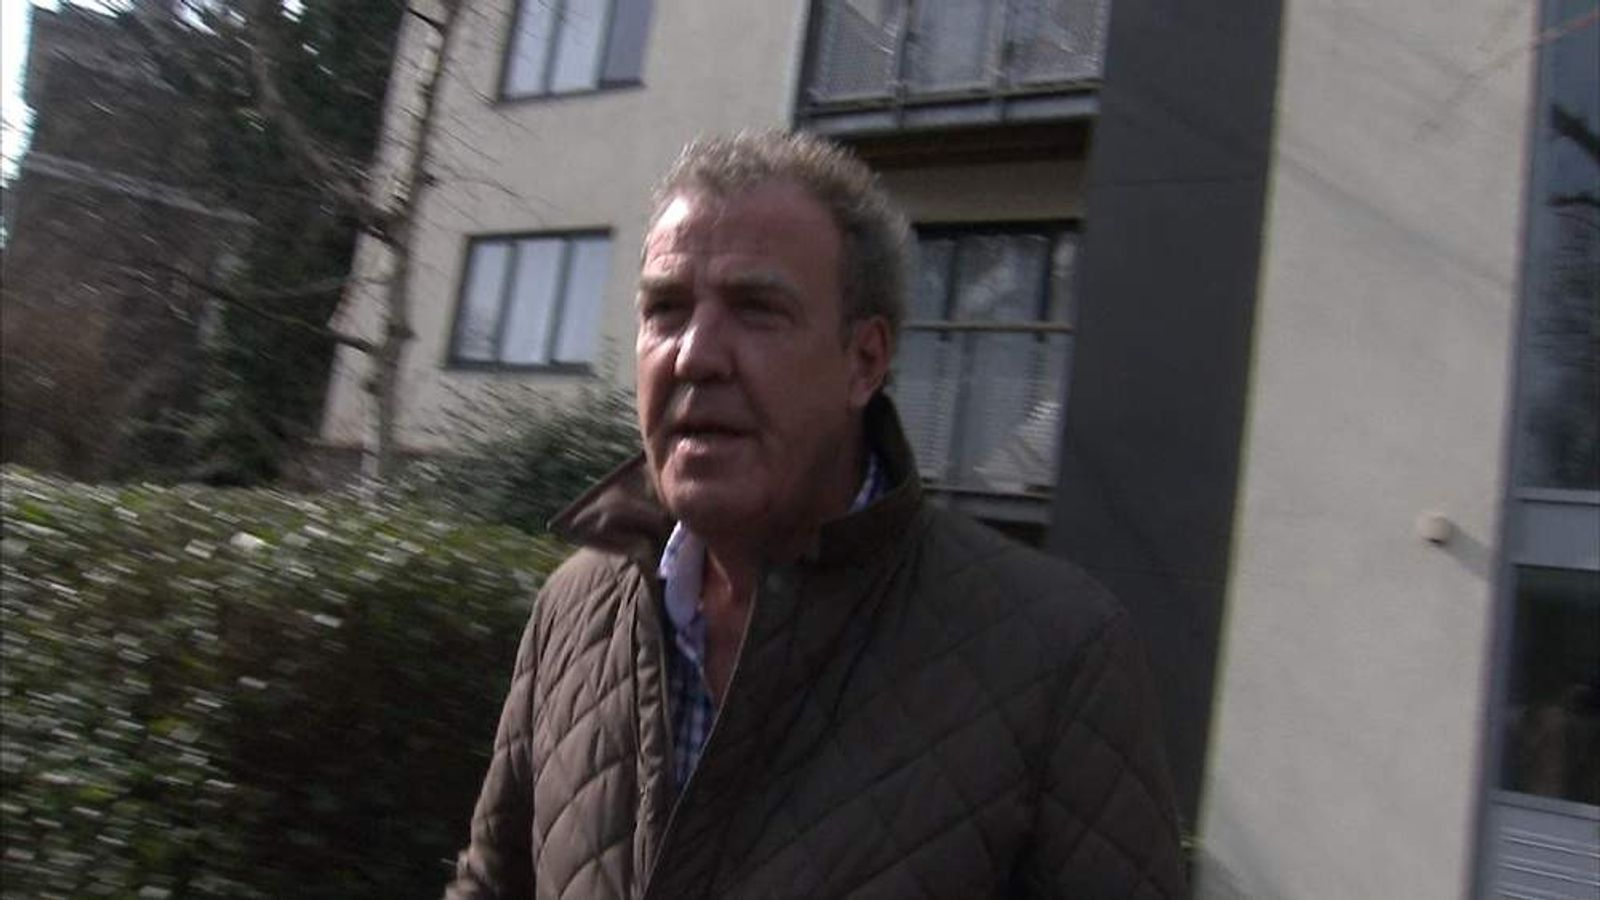 JEREMY CLARKSON LEAVING HOME